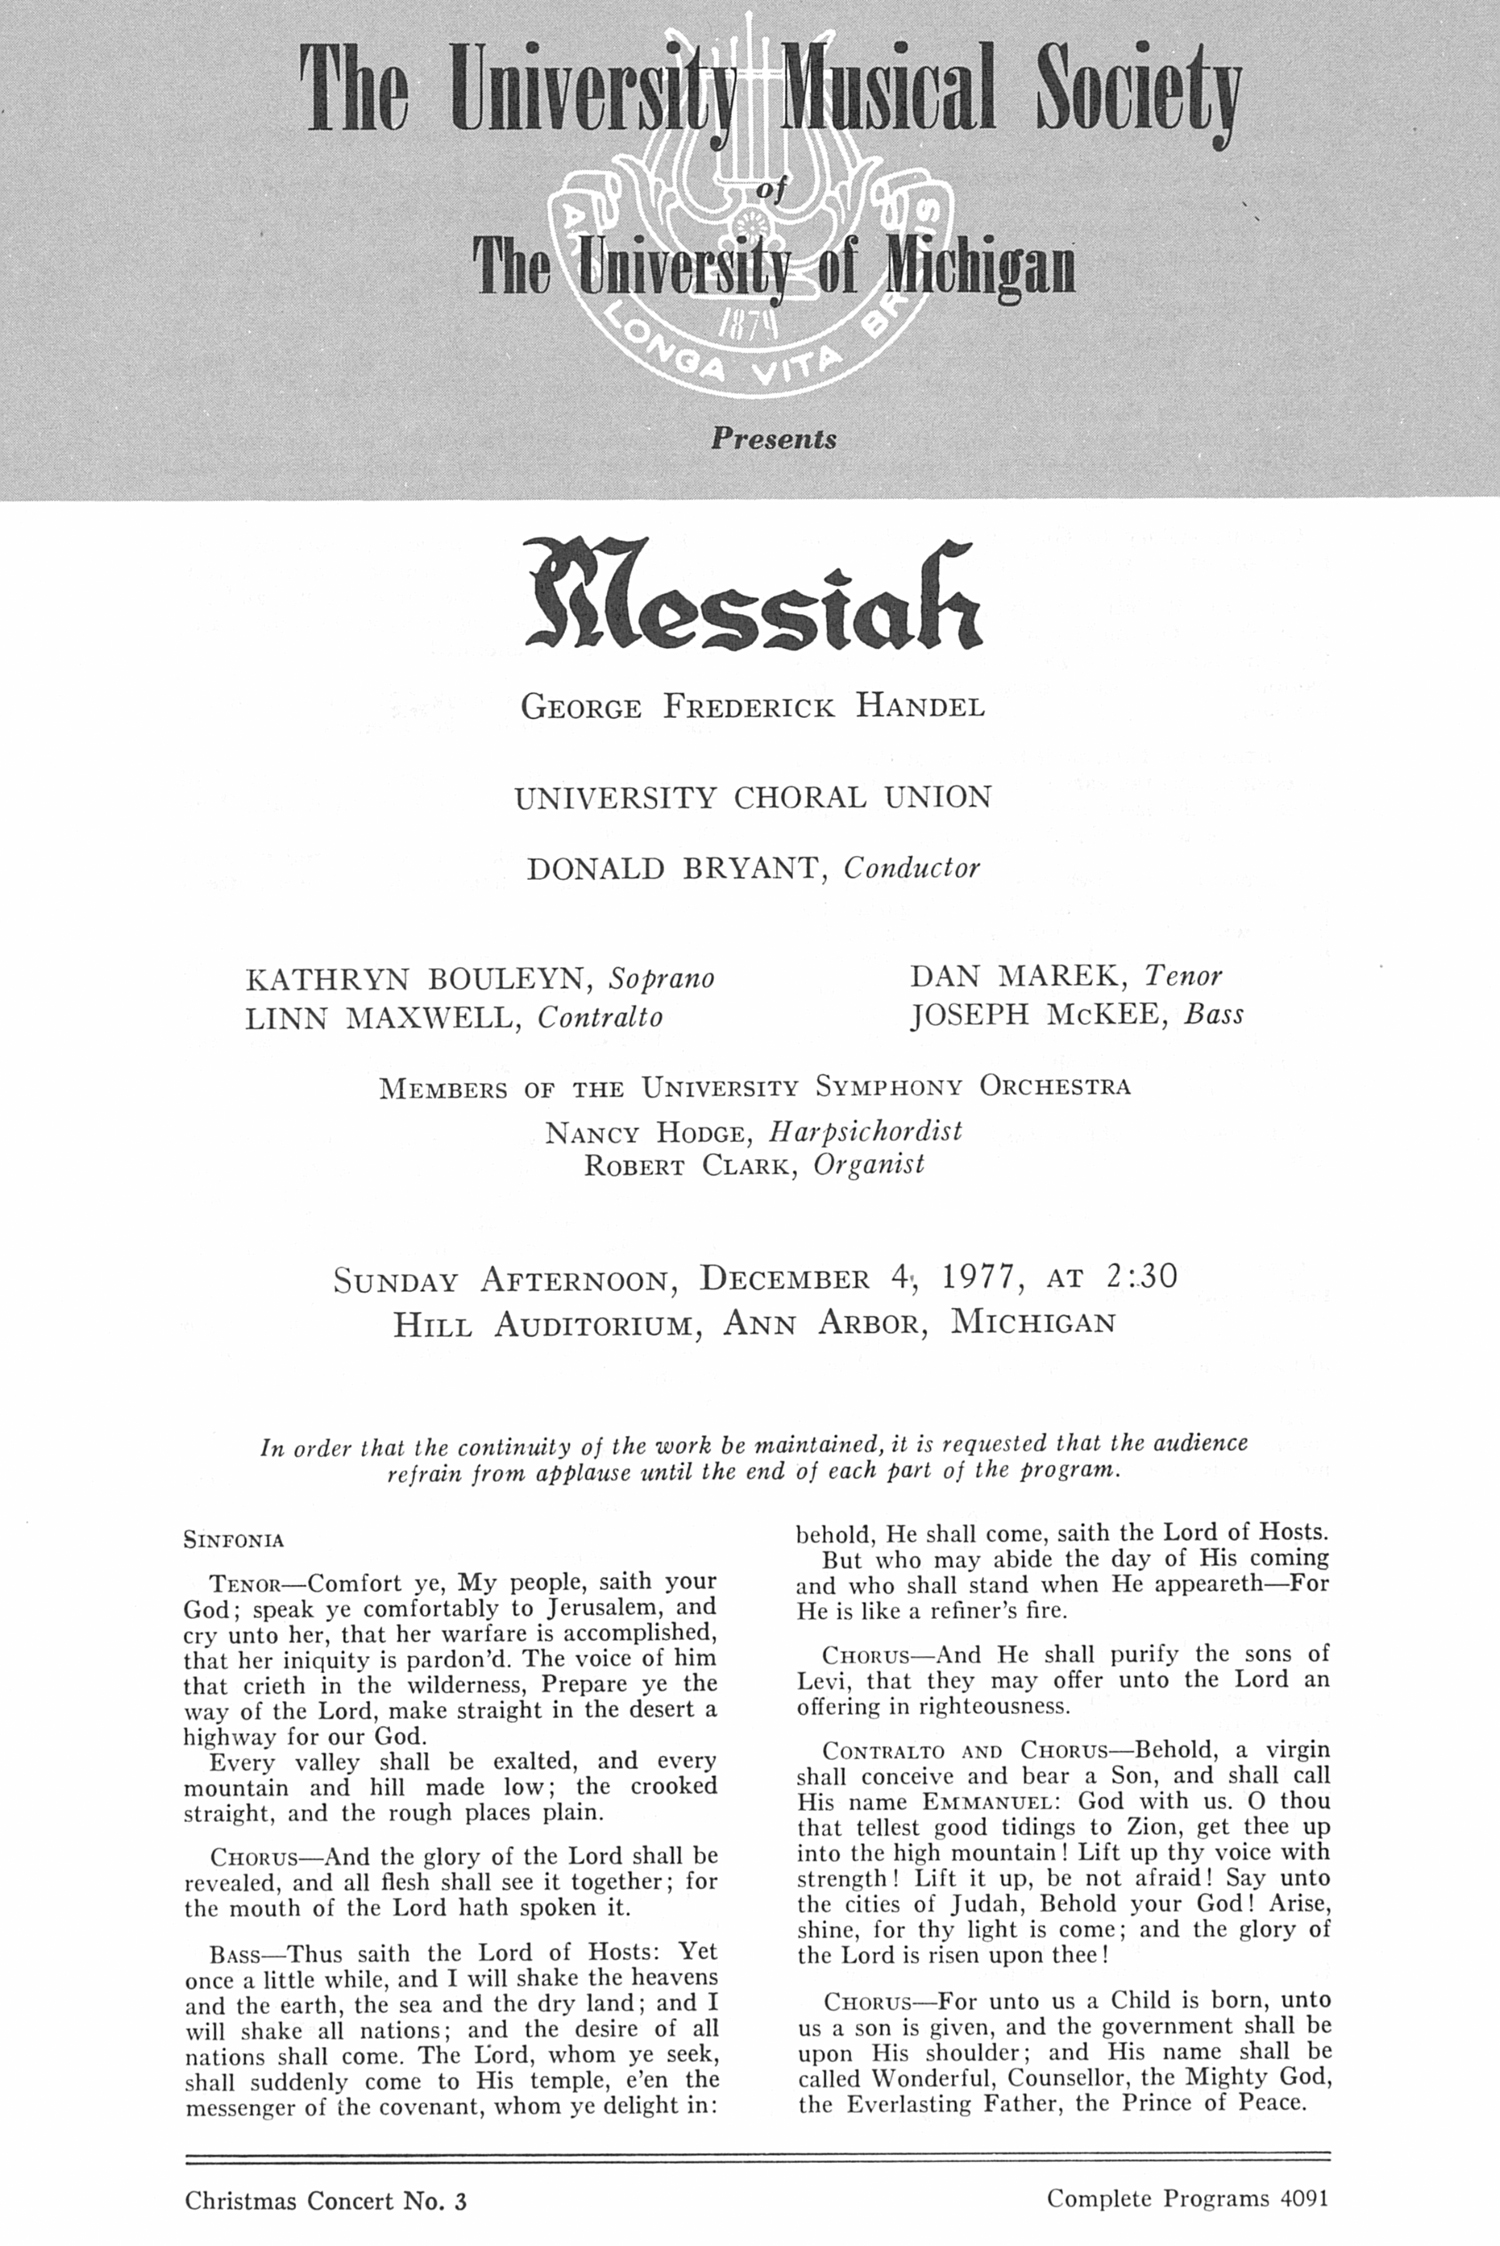 UMS Concert Program, December 4, 1977: Messiah -- George Frederick Handel image